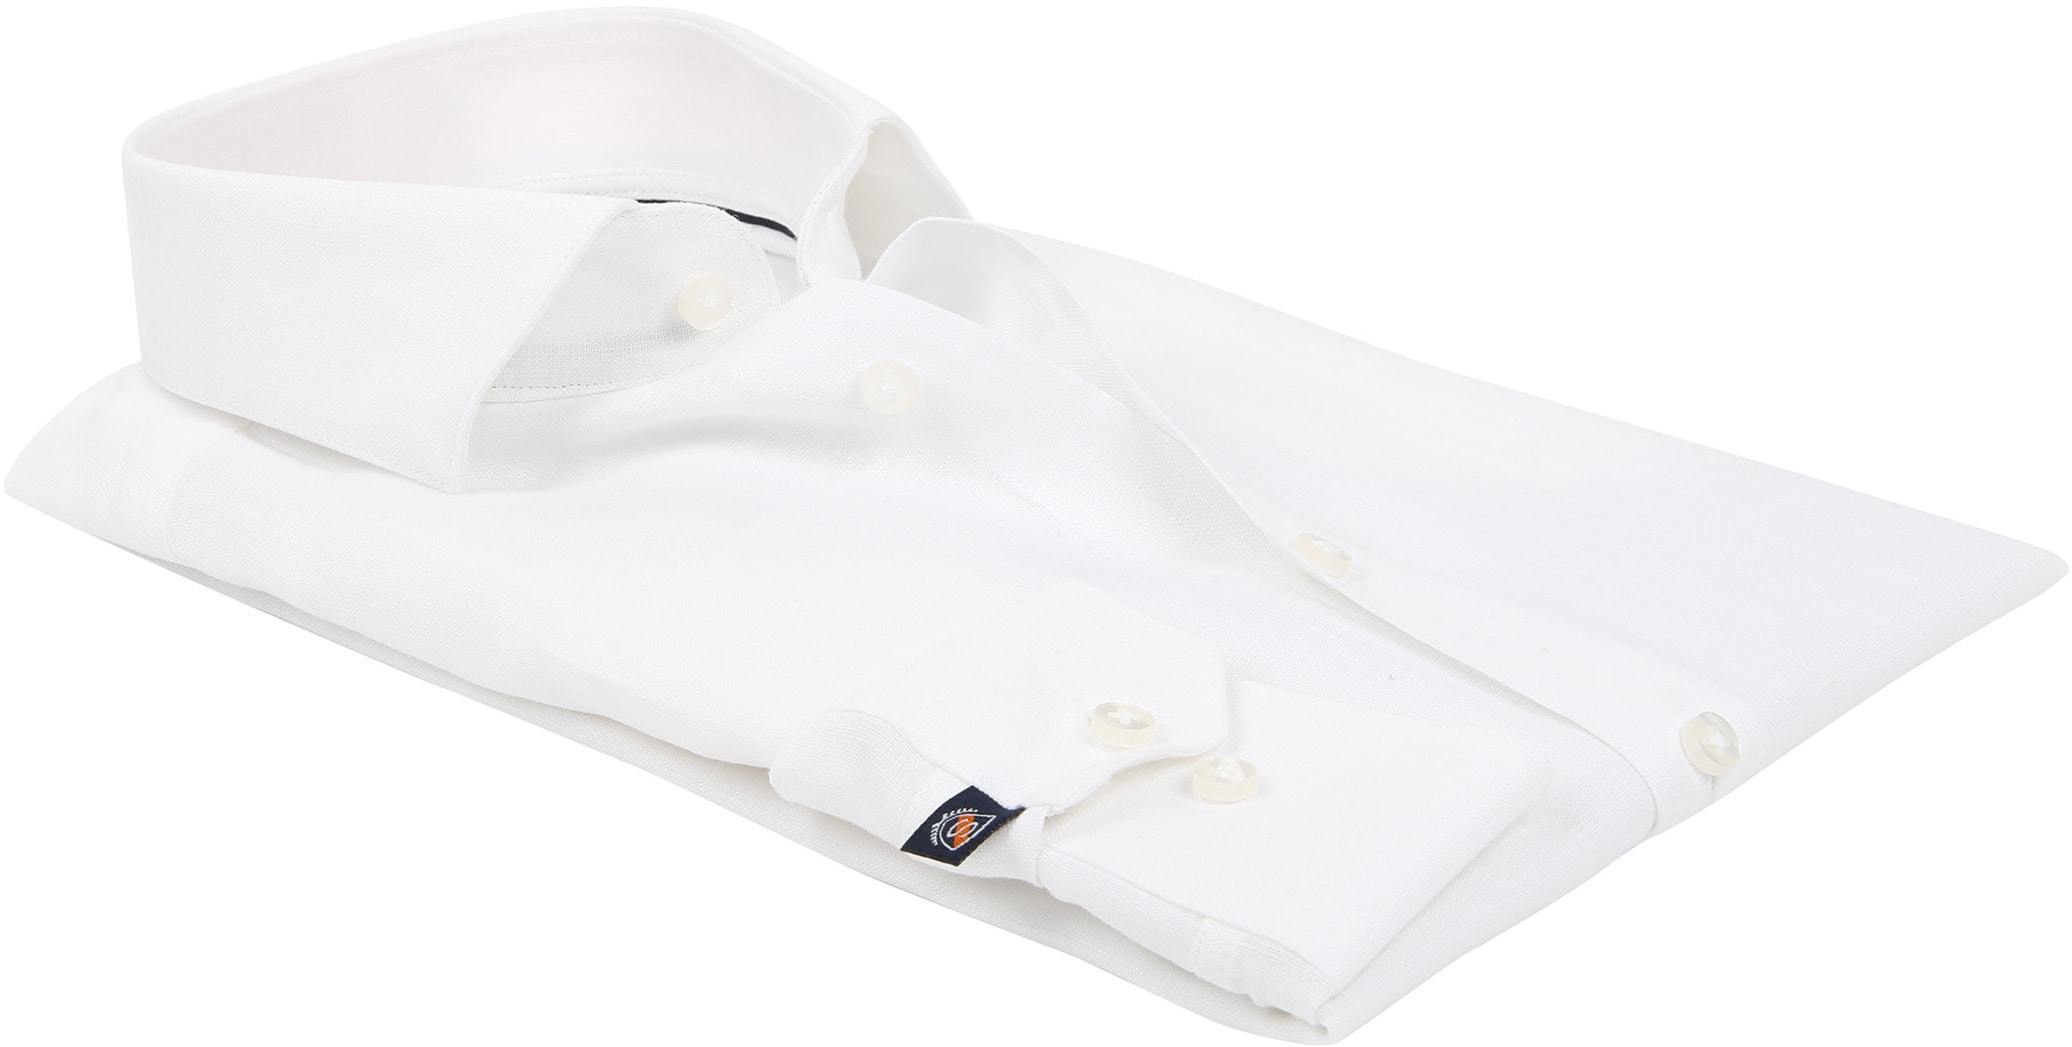 Suitable Shirt Linen White D81-13 foto 3